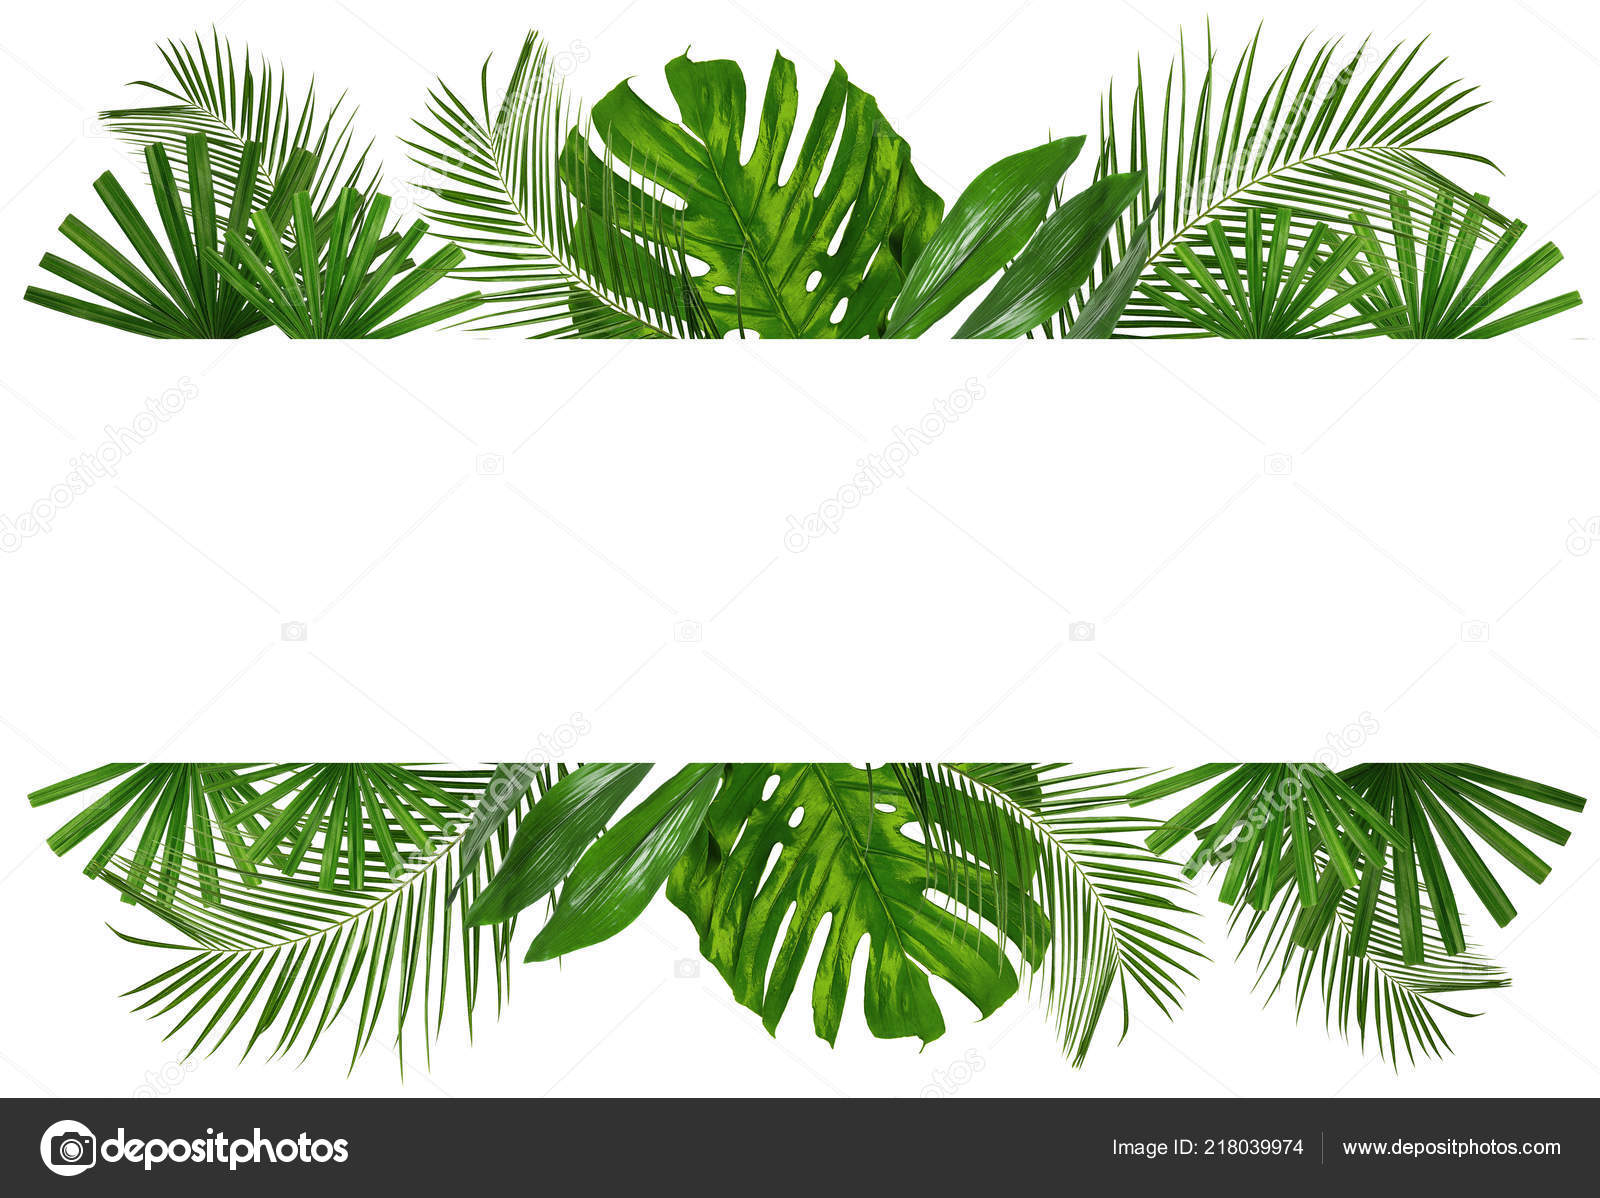 Composition Green Tropical Leaves White Background Stock Photo C Serezniy 218039974 Four green tropical leaves on a white background a set of four art prints. depositphotos